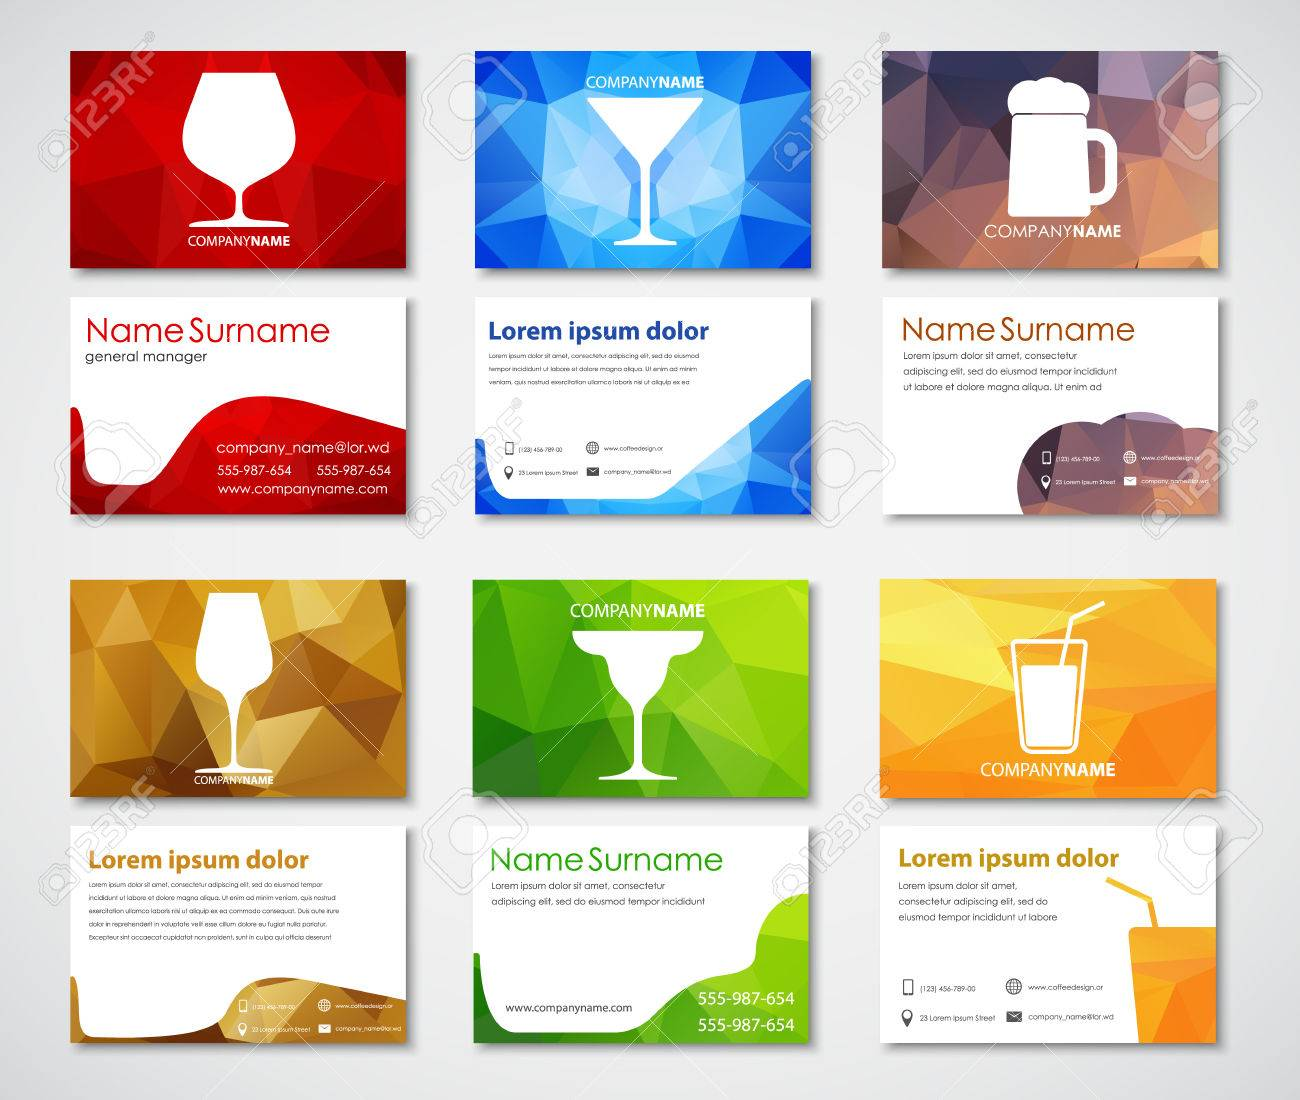 Design Of Business Cards For Cafes, Bars And Restaurants ...